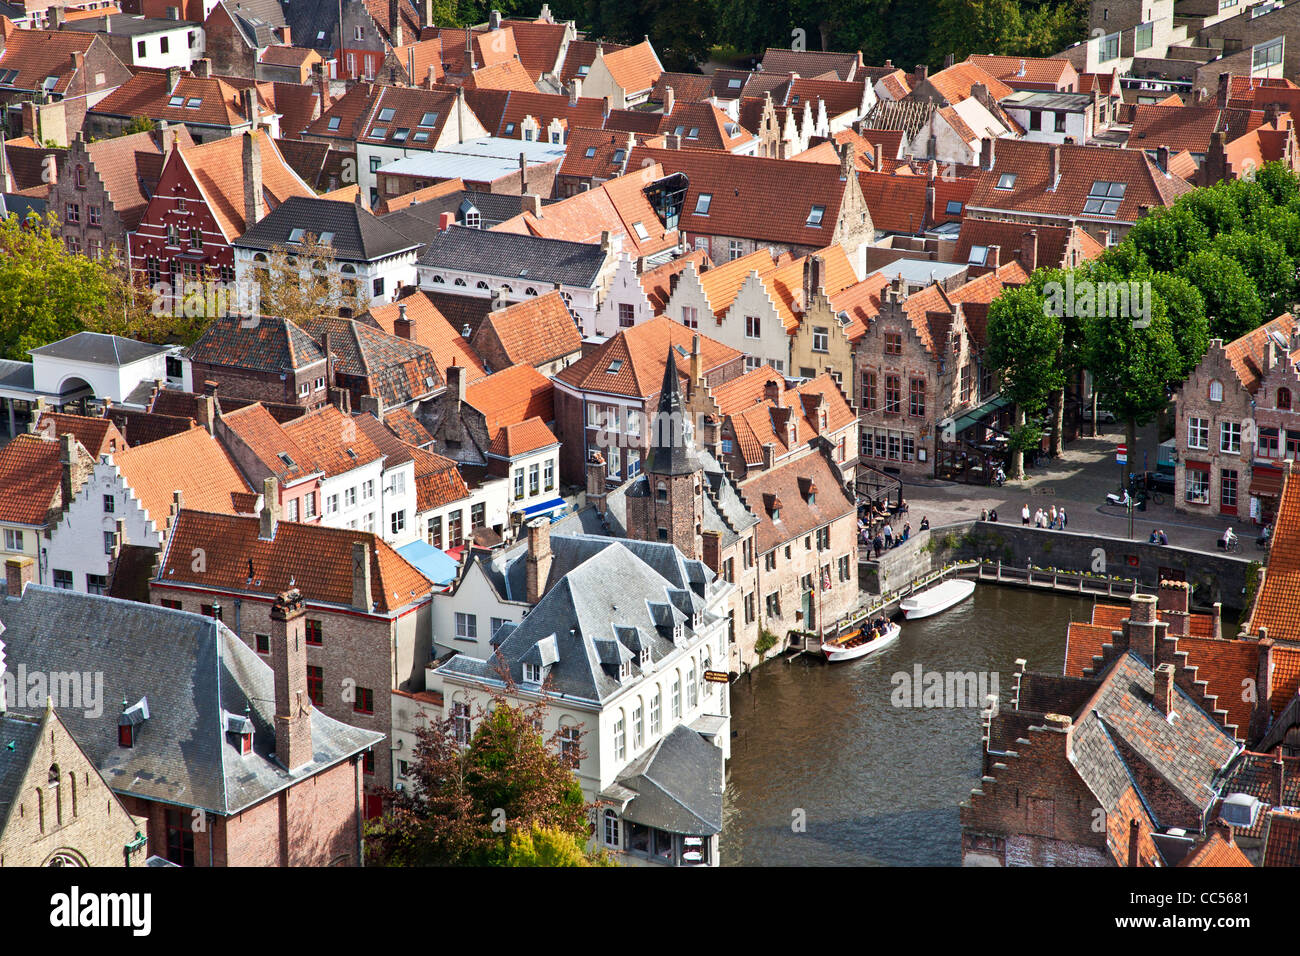 Aerial view over the rooftops and Rosary Quay, Rozenhoedkaai,in Belgian town of Bruges (Brugge), Belgium taken from Stock Photo